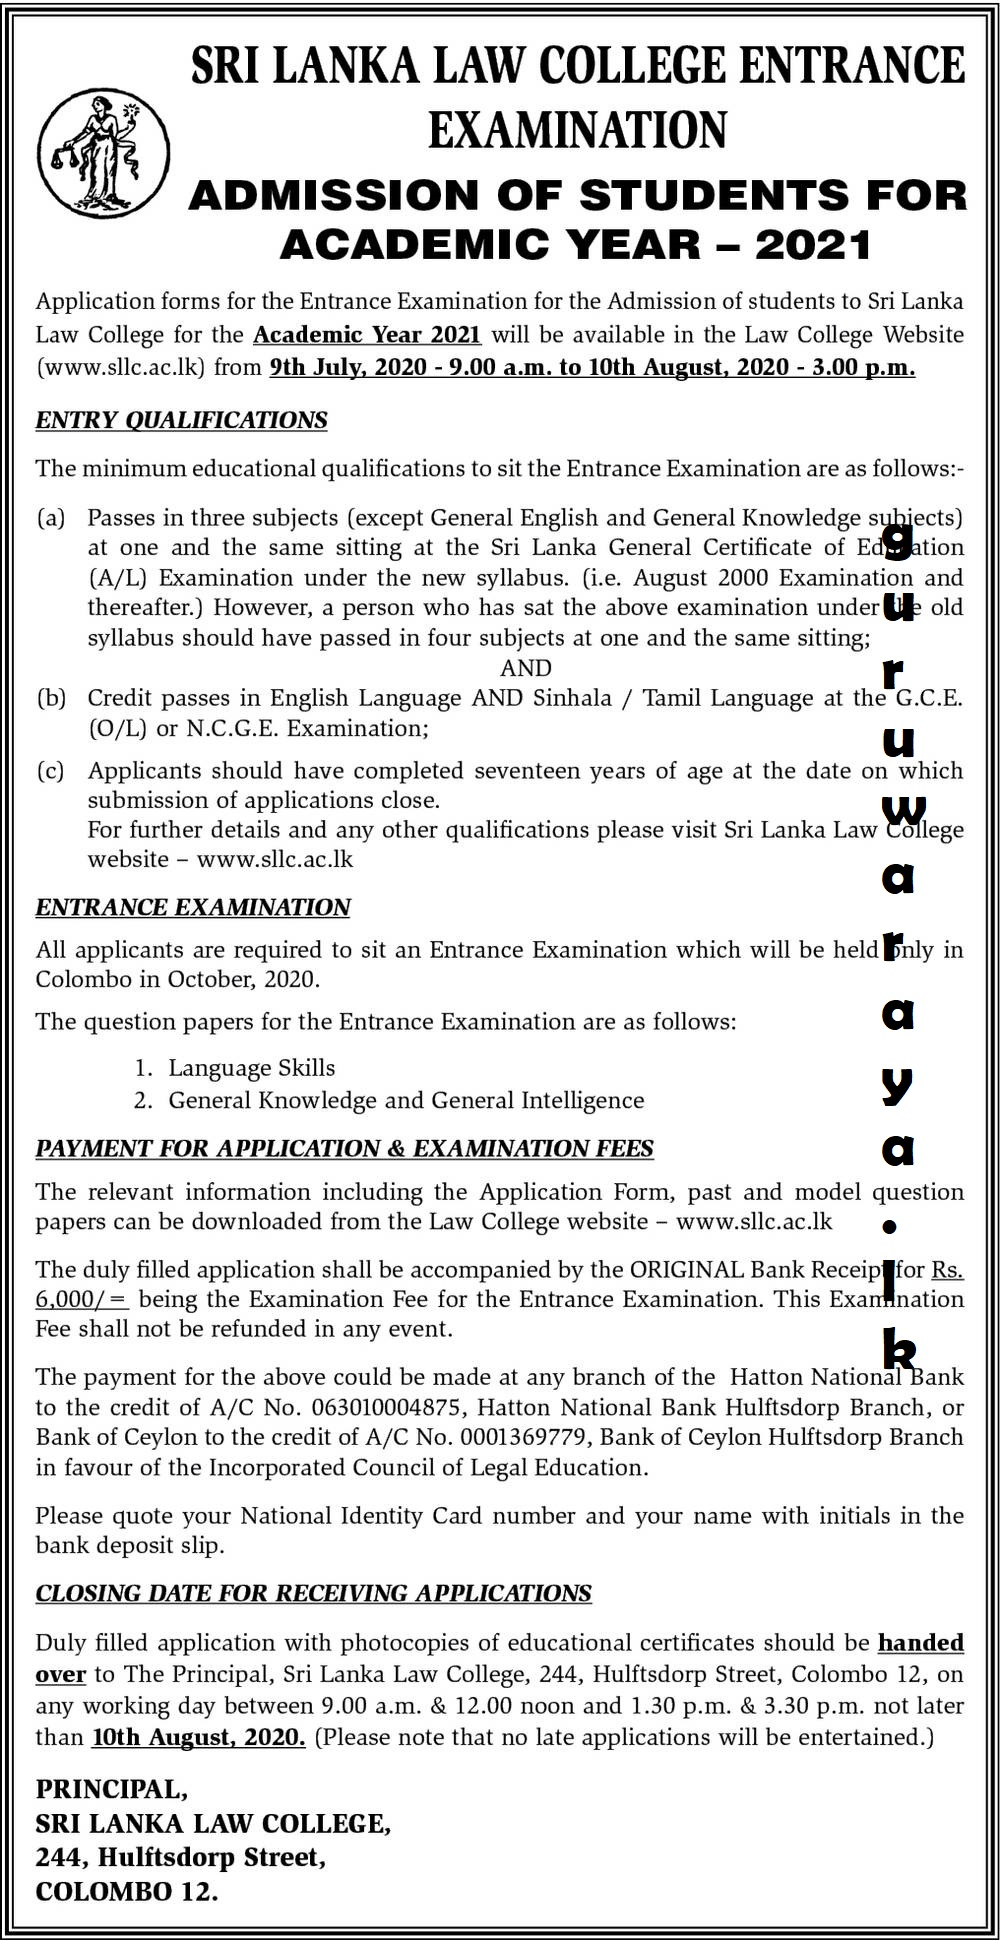 Sri Lanka Law College 2021 Entrance Exam Teacher